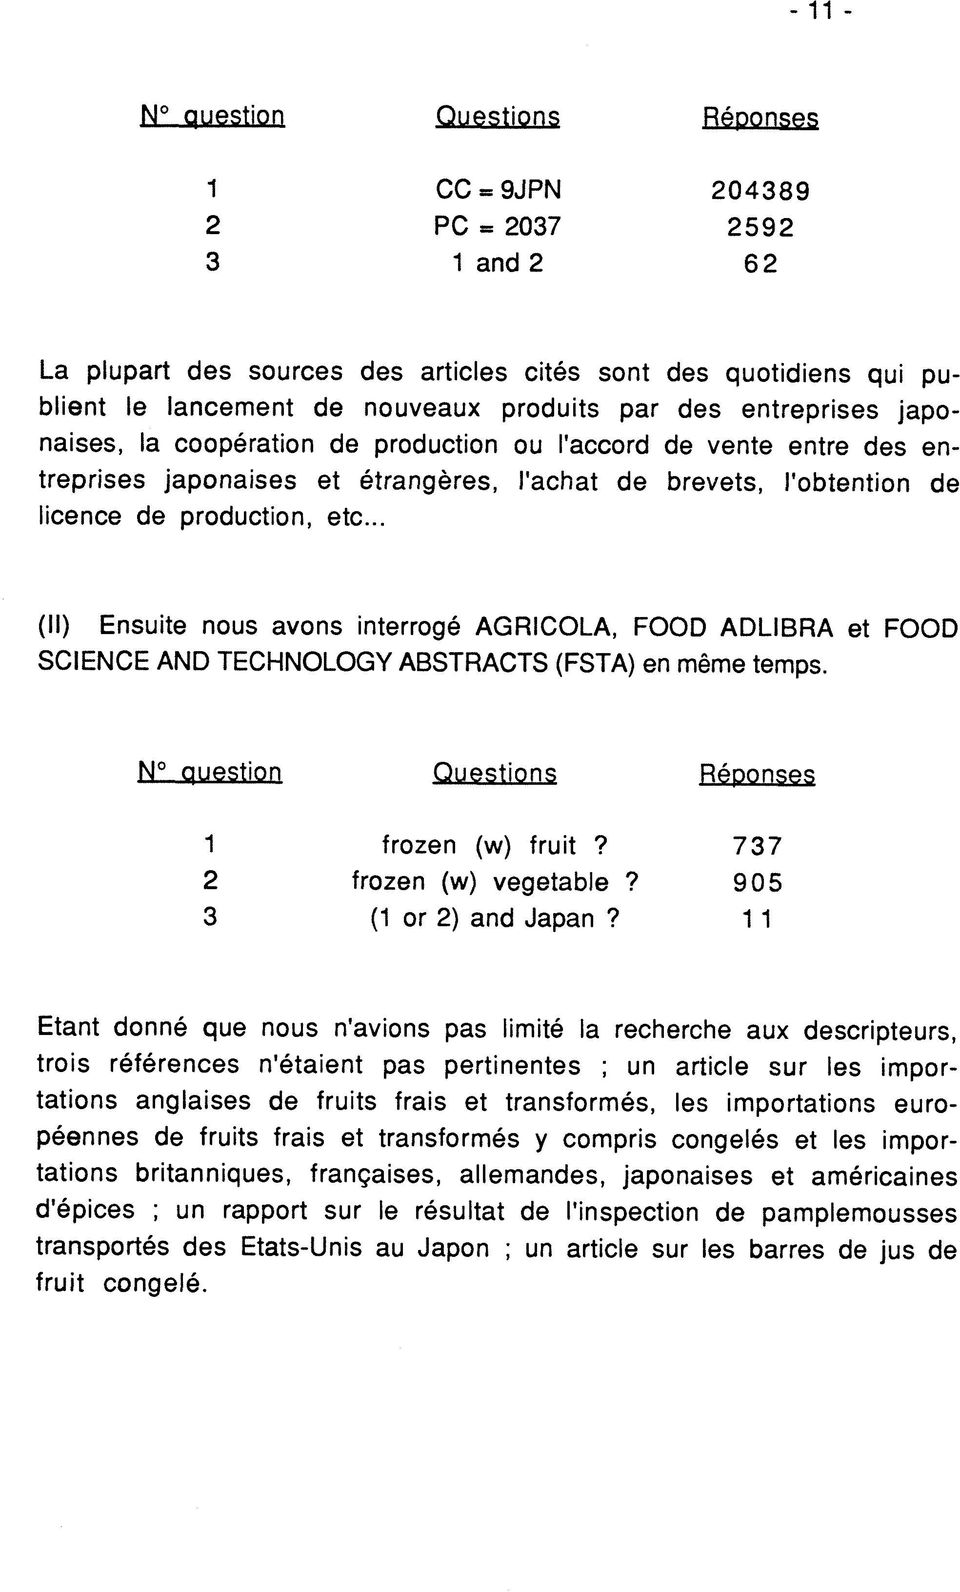 .. (II) Ensuite nous avons interroge AGRICOLA, FOOD ADLIBRA et FOOD SCIENCE AND TECHNOLOGY ABSTRACTS (FSTA) en meme temps. N questipn Questions Reponses 2 3 frozen (w) fruit? frozen (w) vegetable?